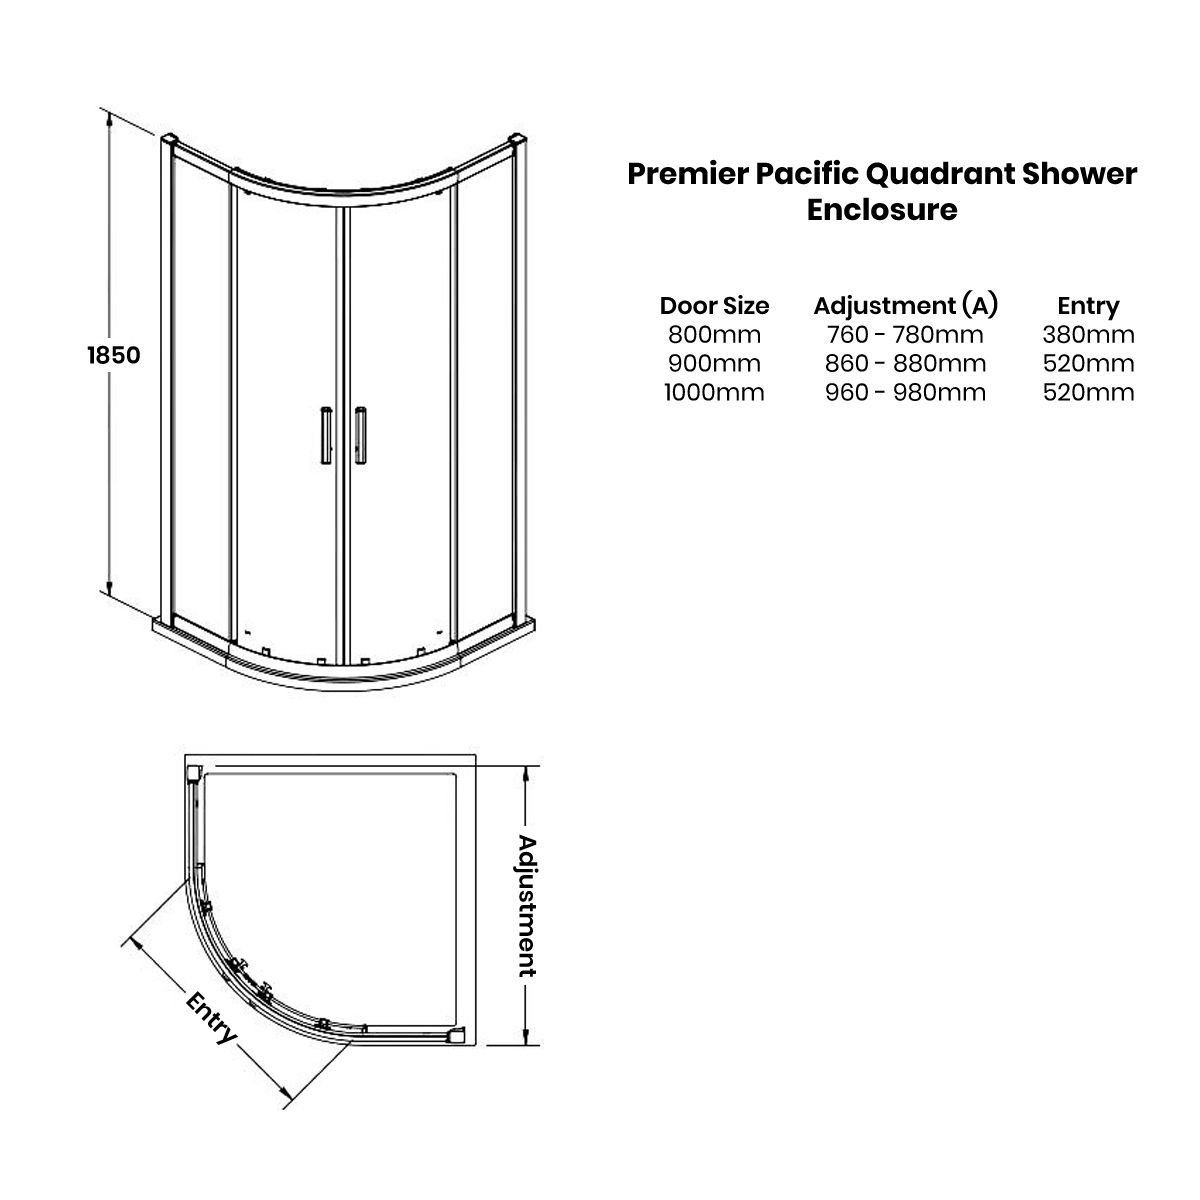 Premier Pacific Double Quadrant Shower Enclosure Dimensions